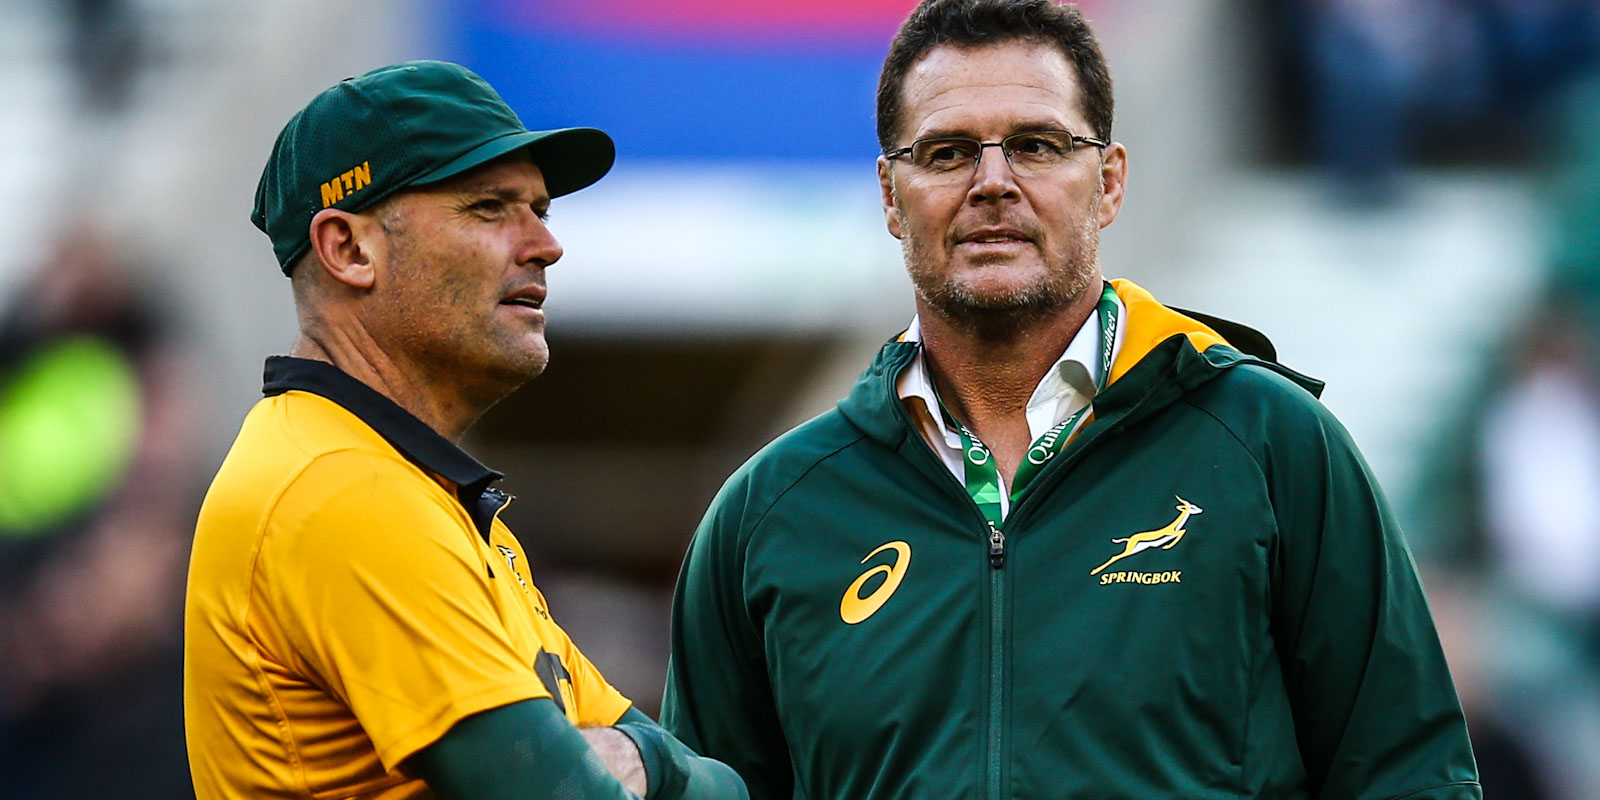 Springbok coach Jacques Nienaber & SA Rugby Director of Rugby Rassie Erasmus